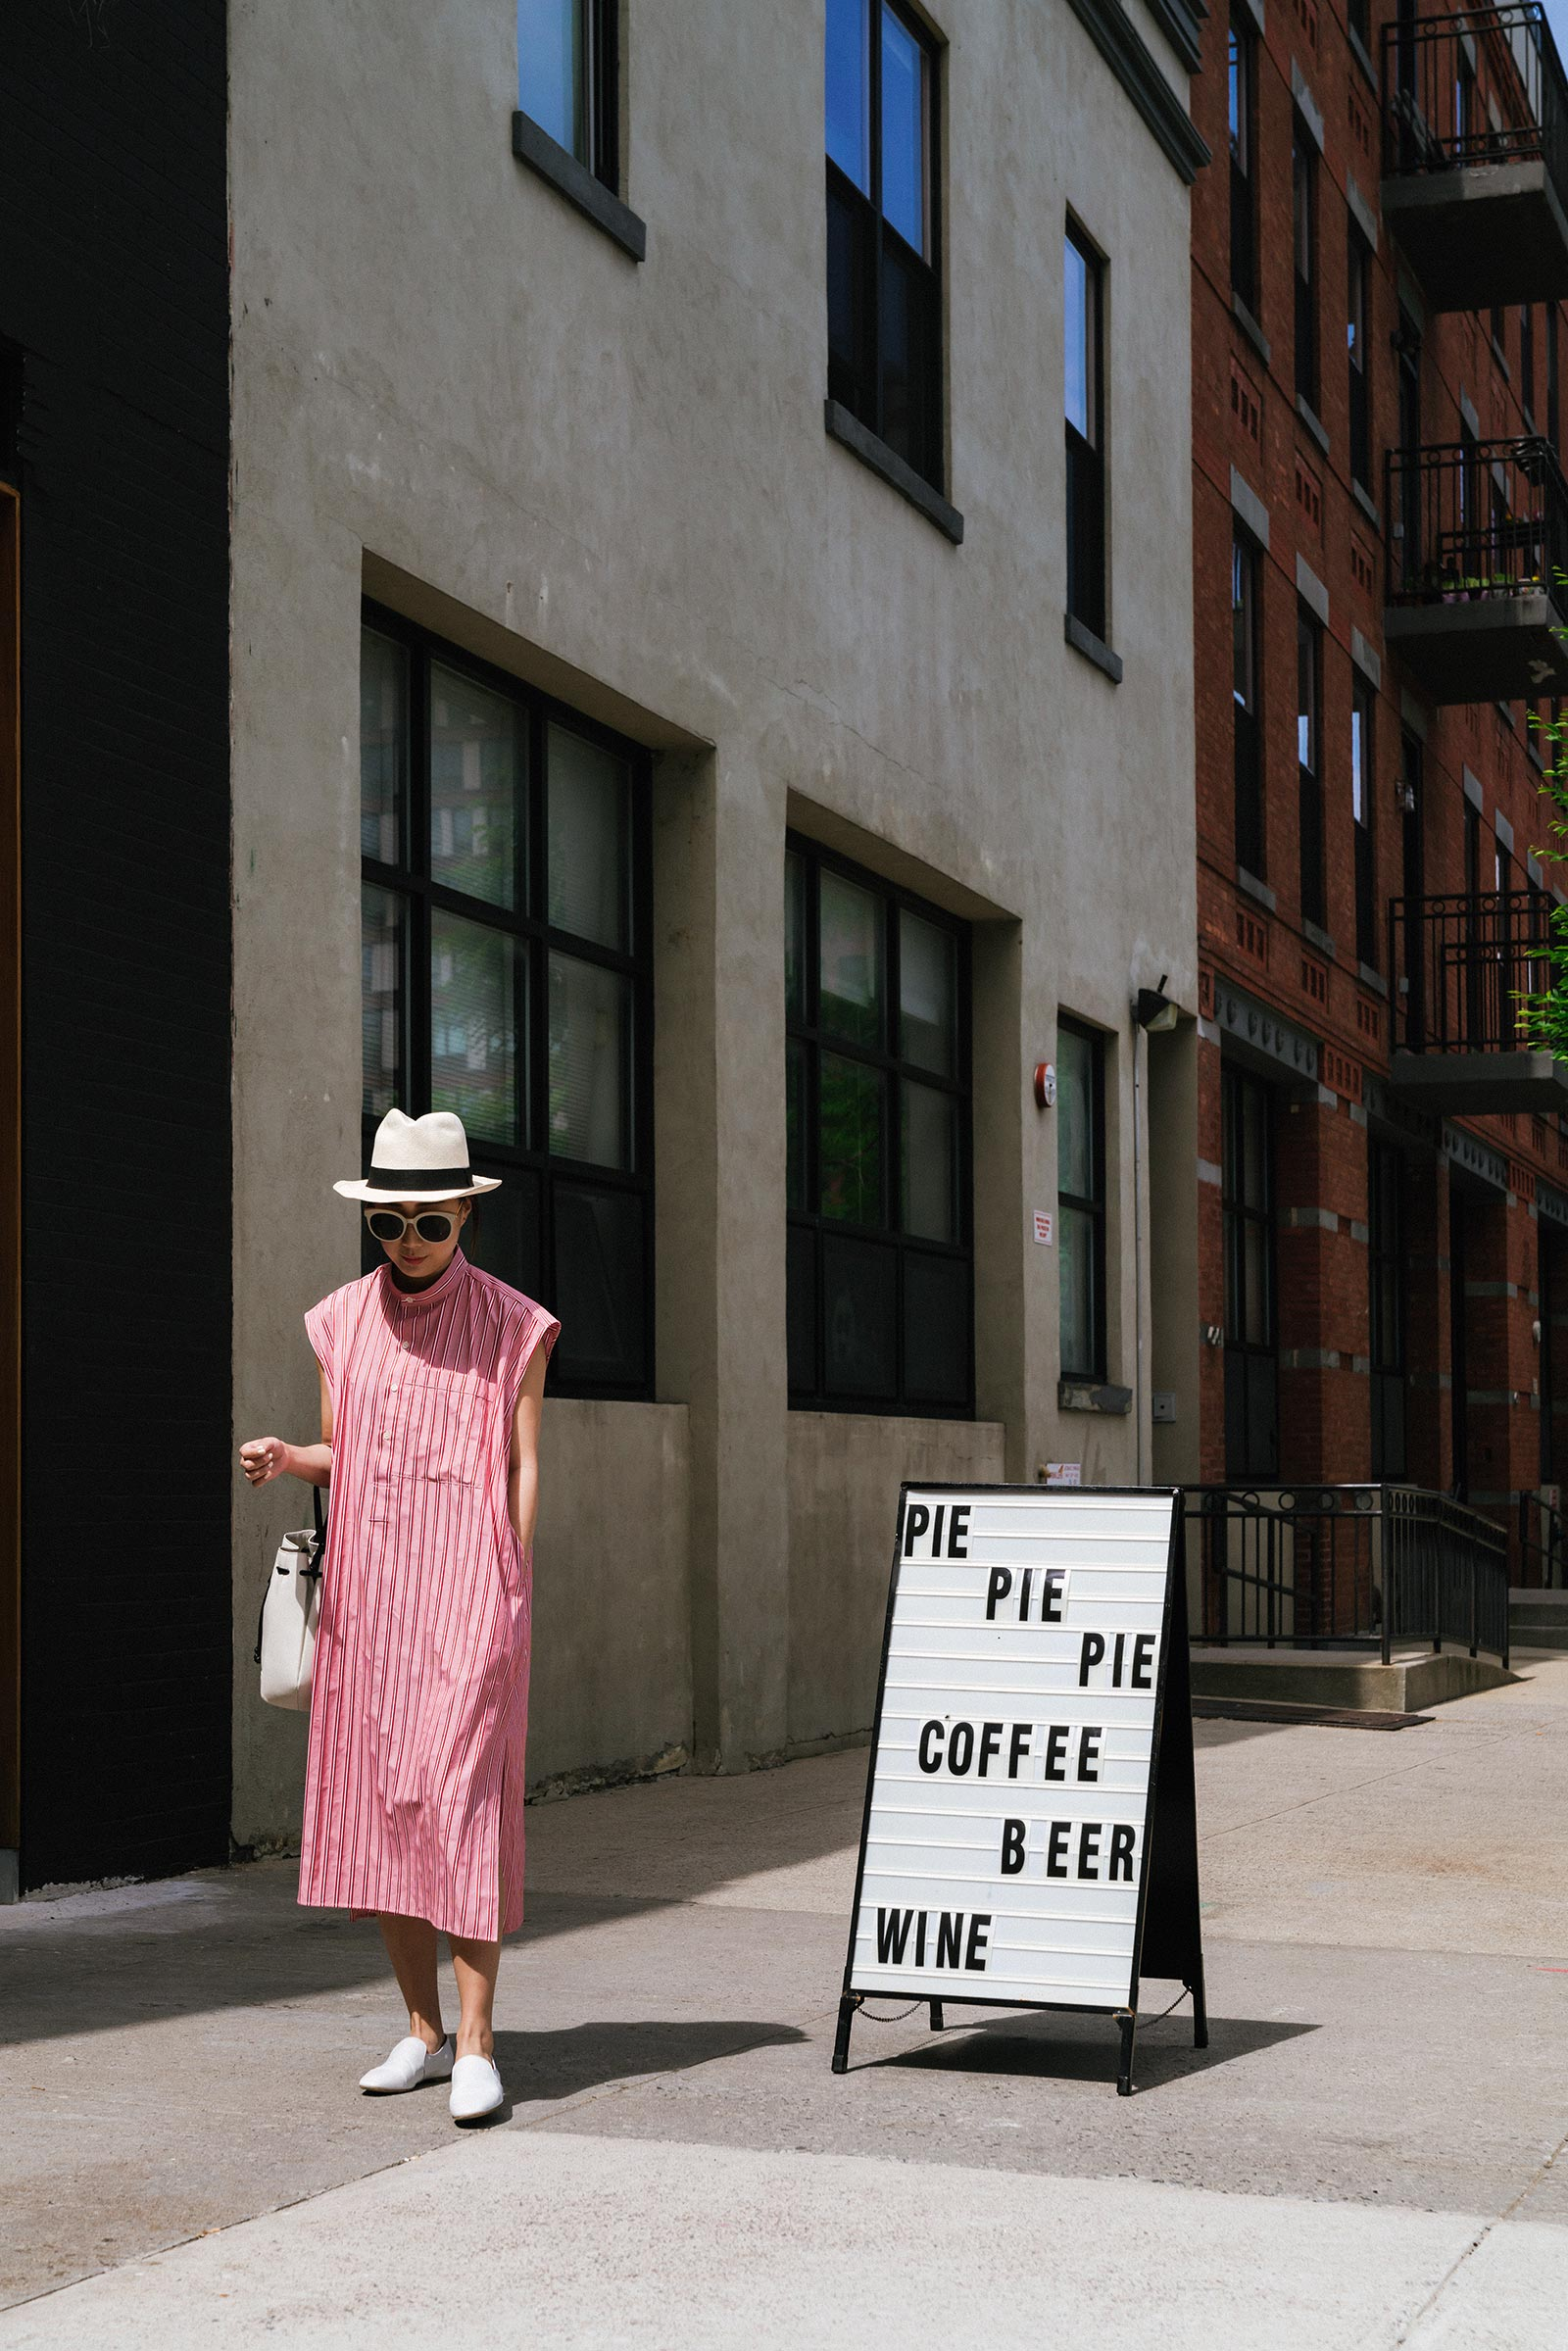 Pie shop  (and really good lattes) in the new neighborhood!